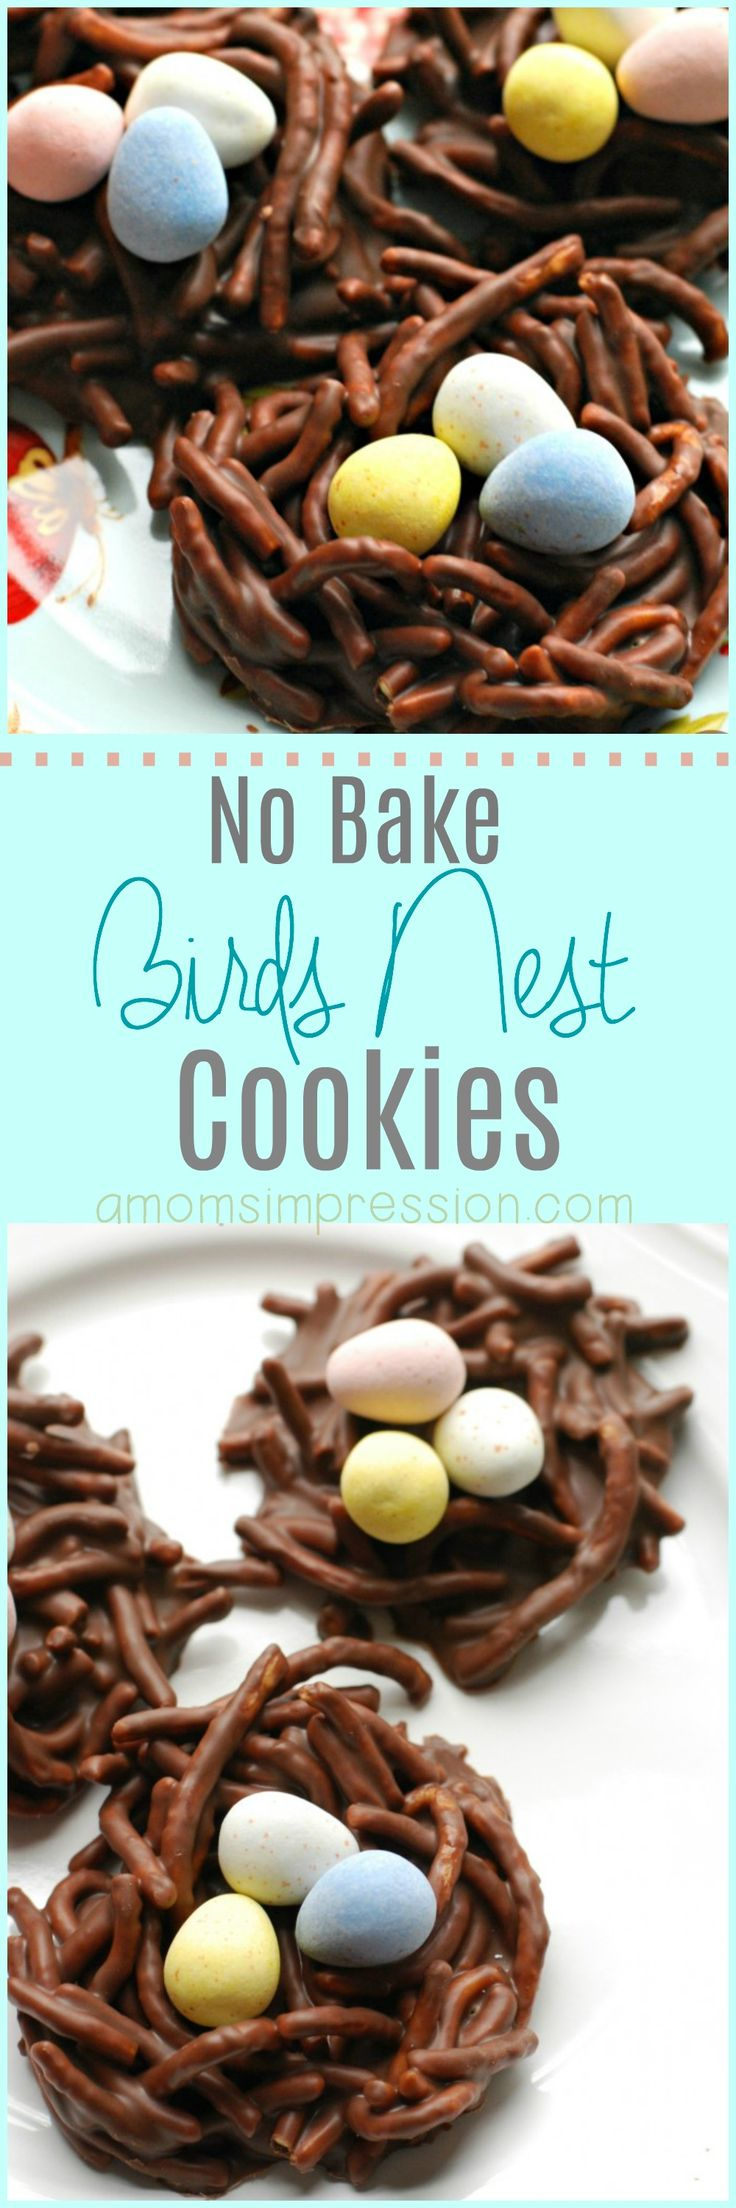 Adorable no bake bird's nest cookies recipe that uses both chocolate and peanut butter to make the most delicious nests. This version uses chow mein noodles to make the nests look realistic. #Easter #Eastercookies #birdsnest #spring via @kjhodson